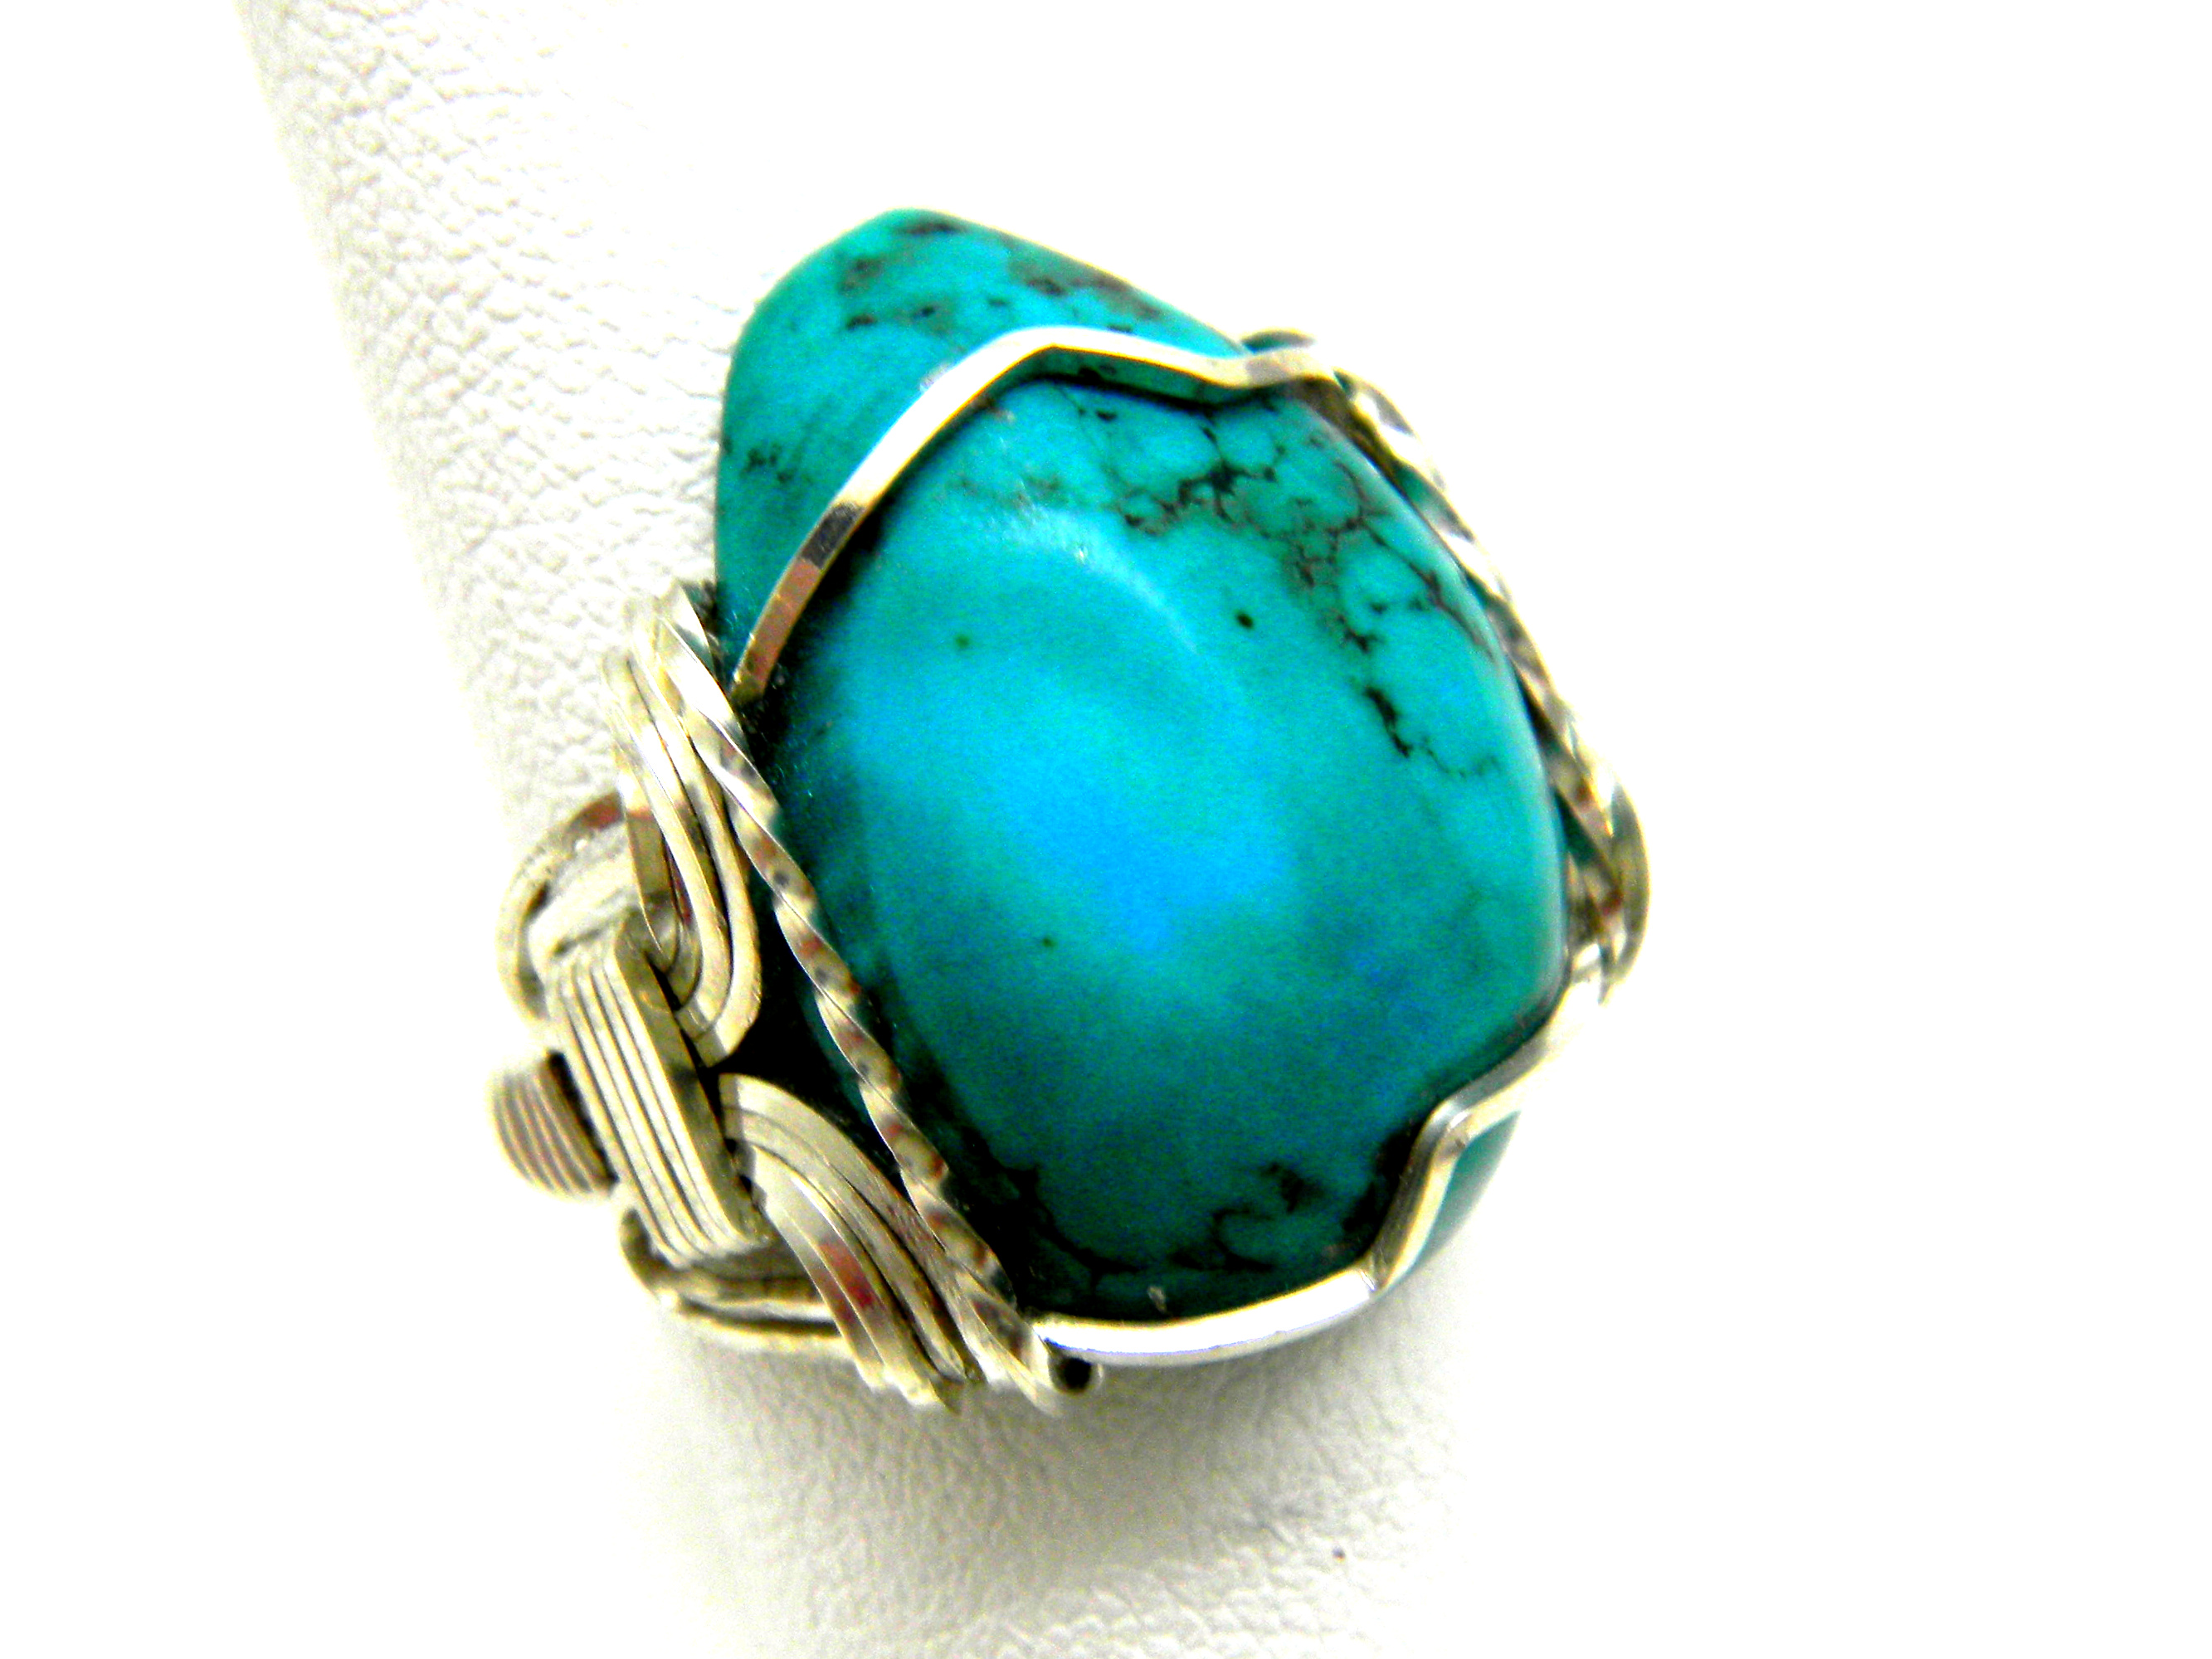 native indian teal jewelry cz detail muskett buy wedding component sz american band rings turquoise navajo virtuemart